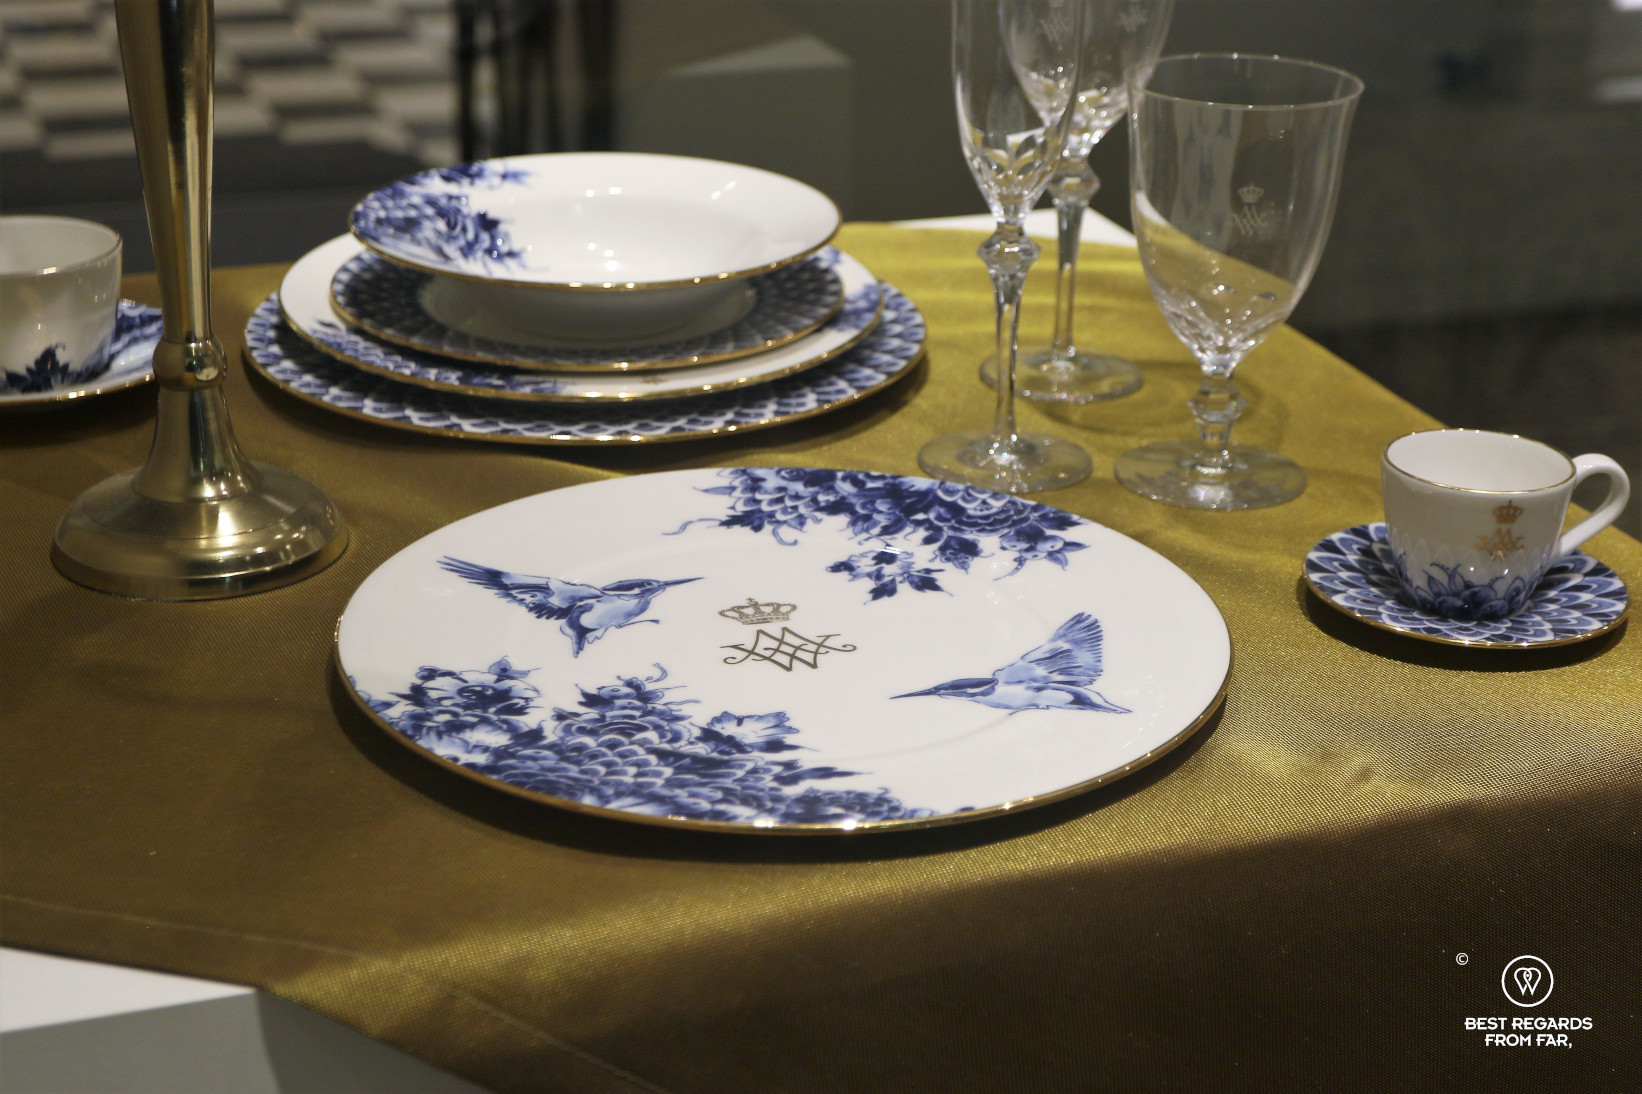 Service with royal initials and birds at the Royal Delft Museum, the Netherlands